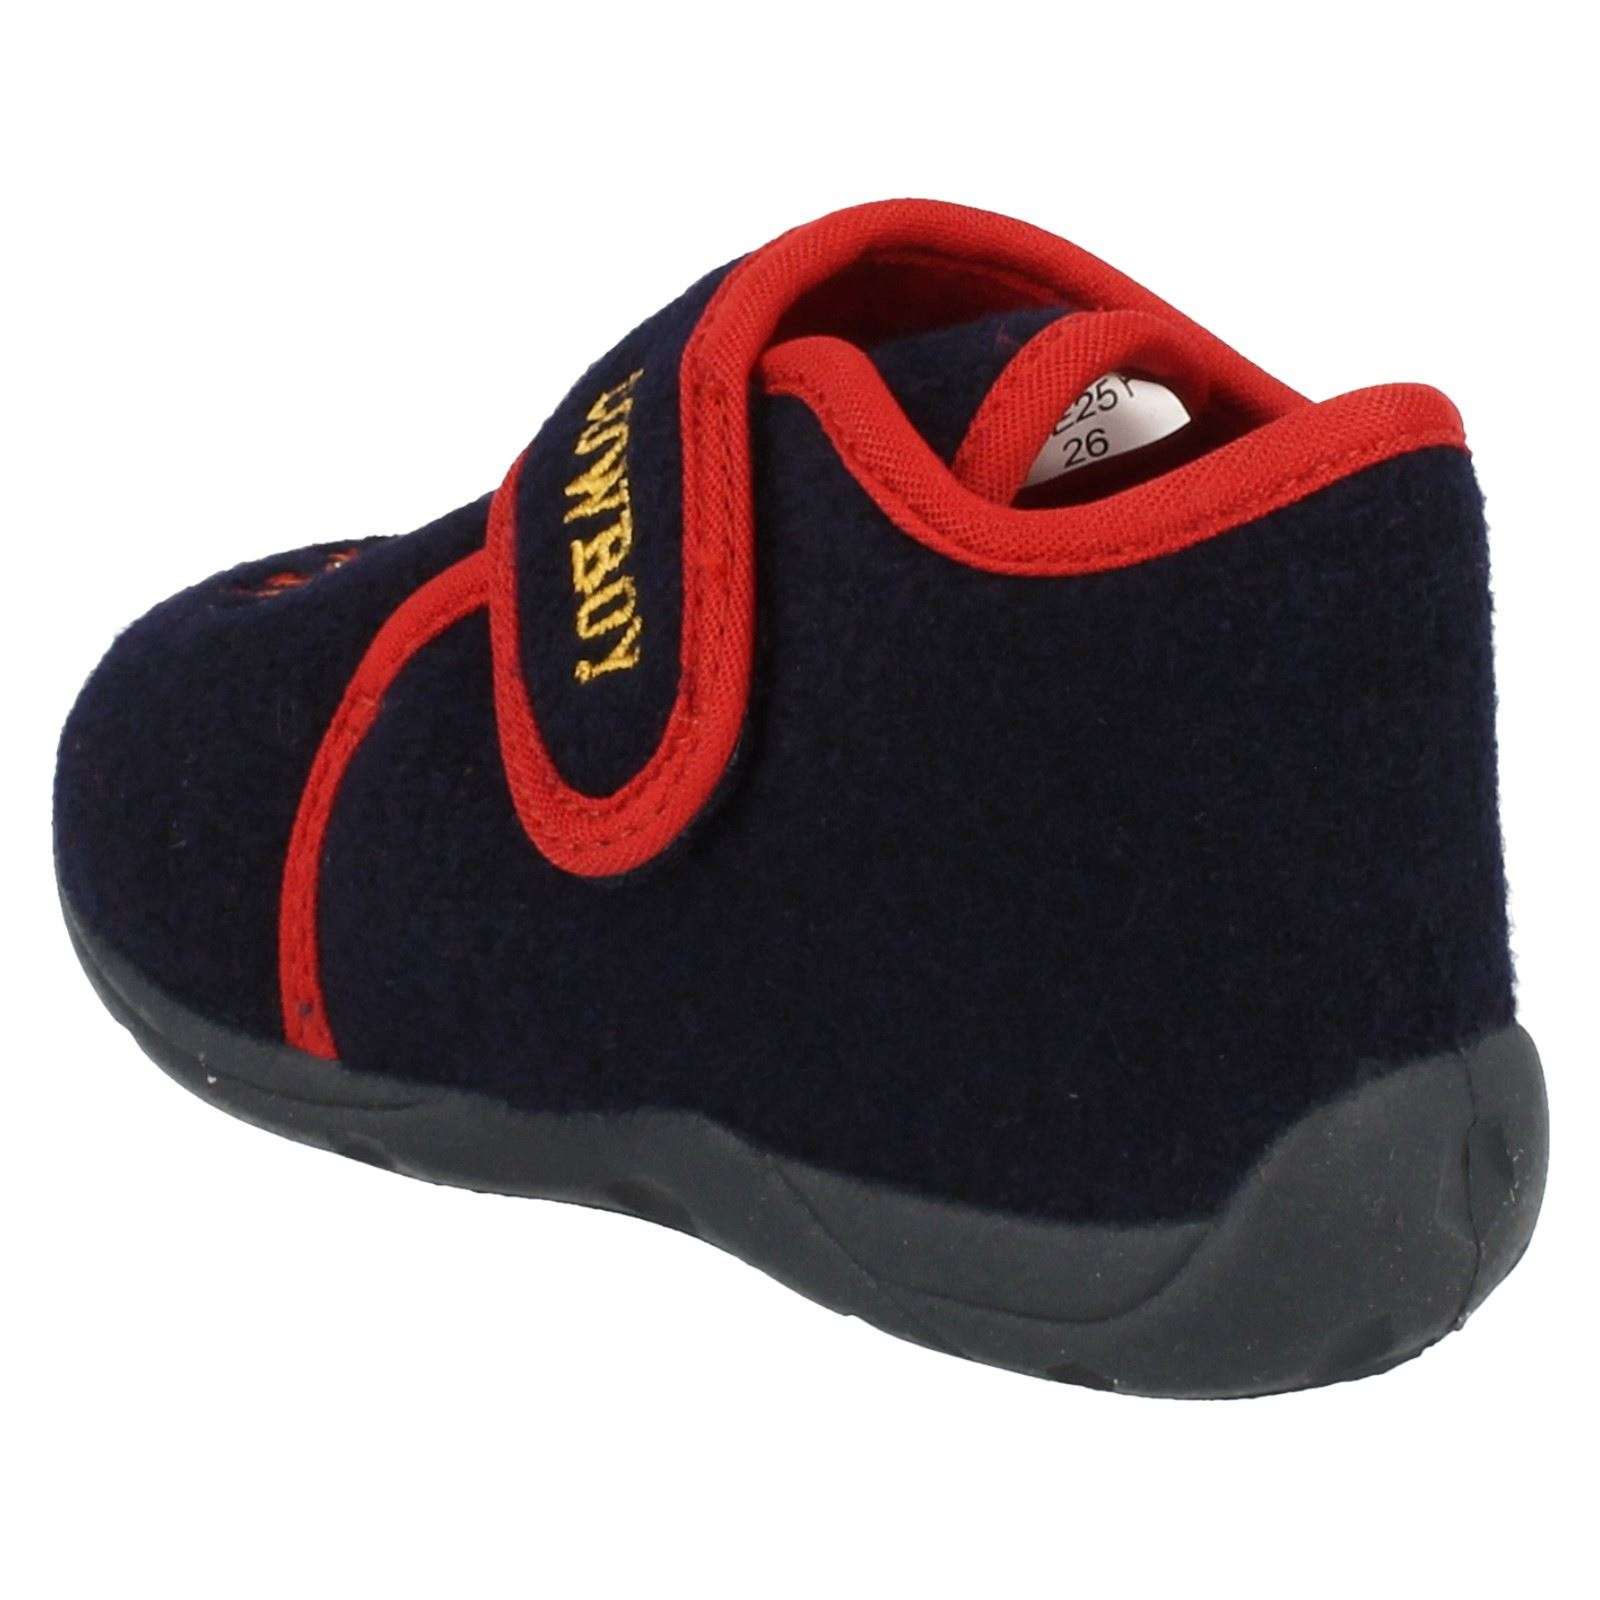 'Infant Boys Startrite' Rounded Toe Riptape Strap Bootie Slippers - Rodeo